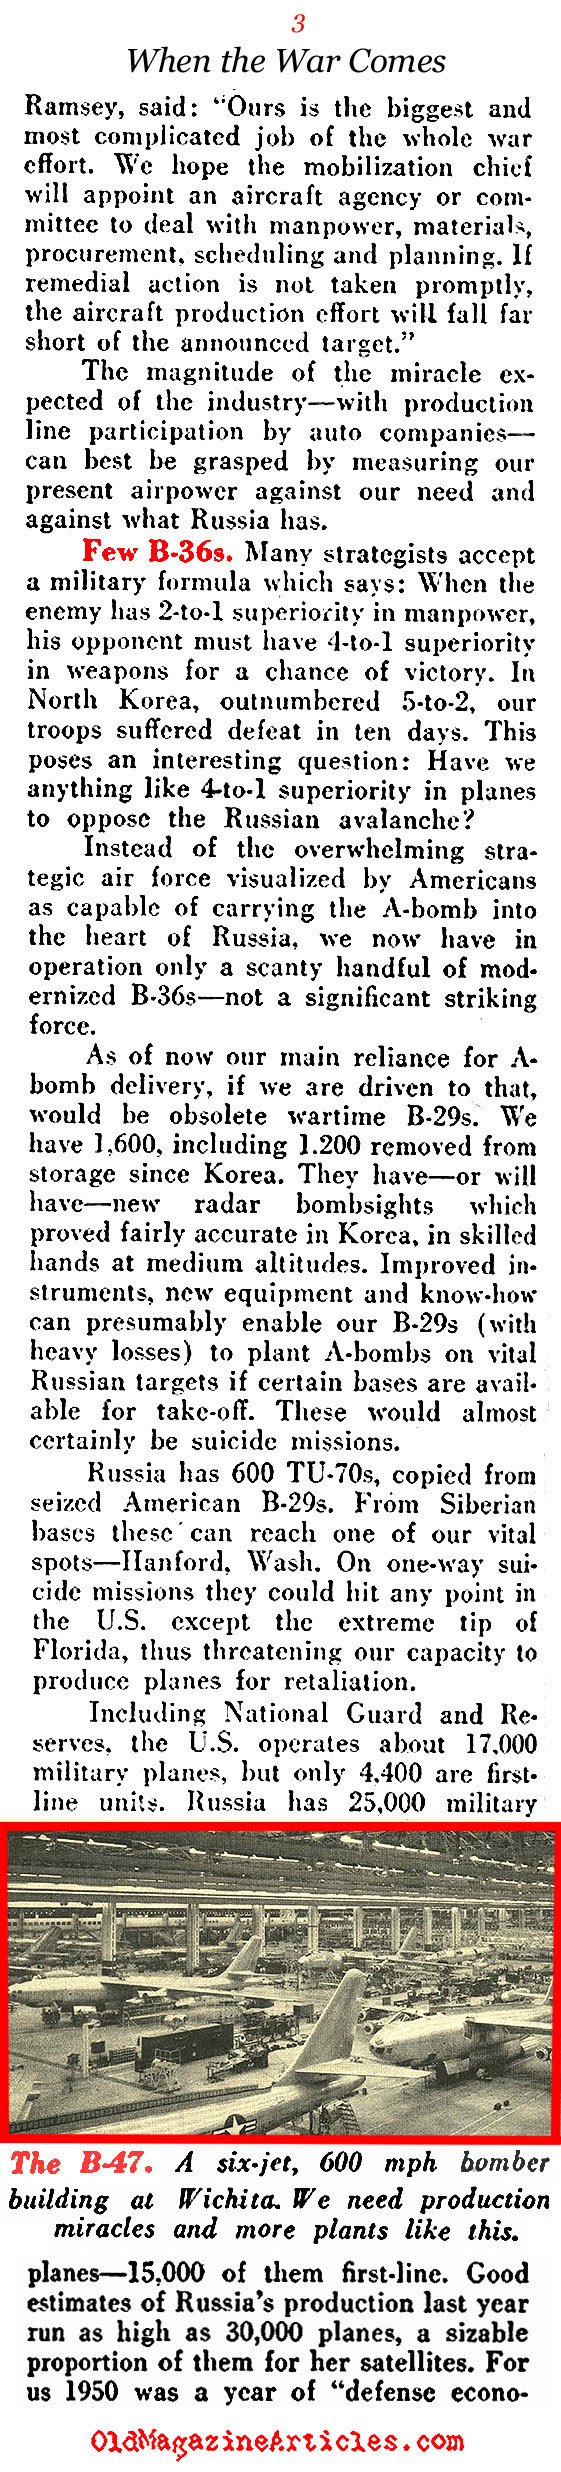 Why America Could Win A War Against Russia (Pathfinder Magazine, 1951)